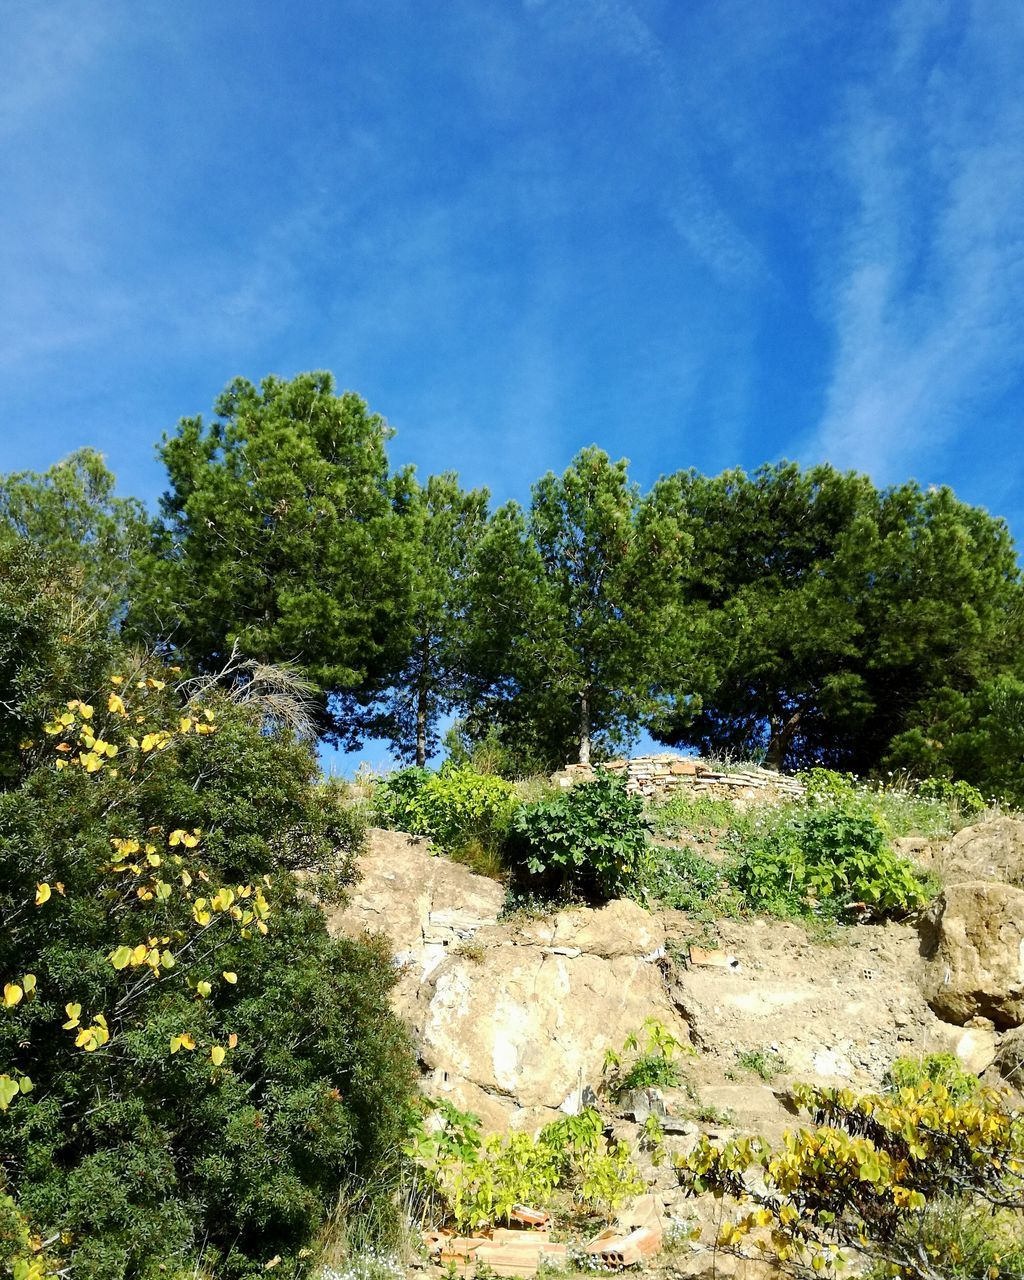 tree, growth, nature, outdoors, day, tranquility, beauty in nature, plant, no people, tranquil scene, blue, scenics, sky